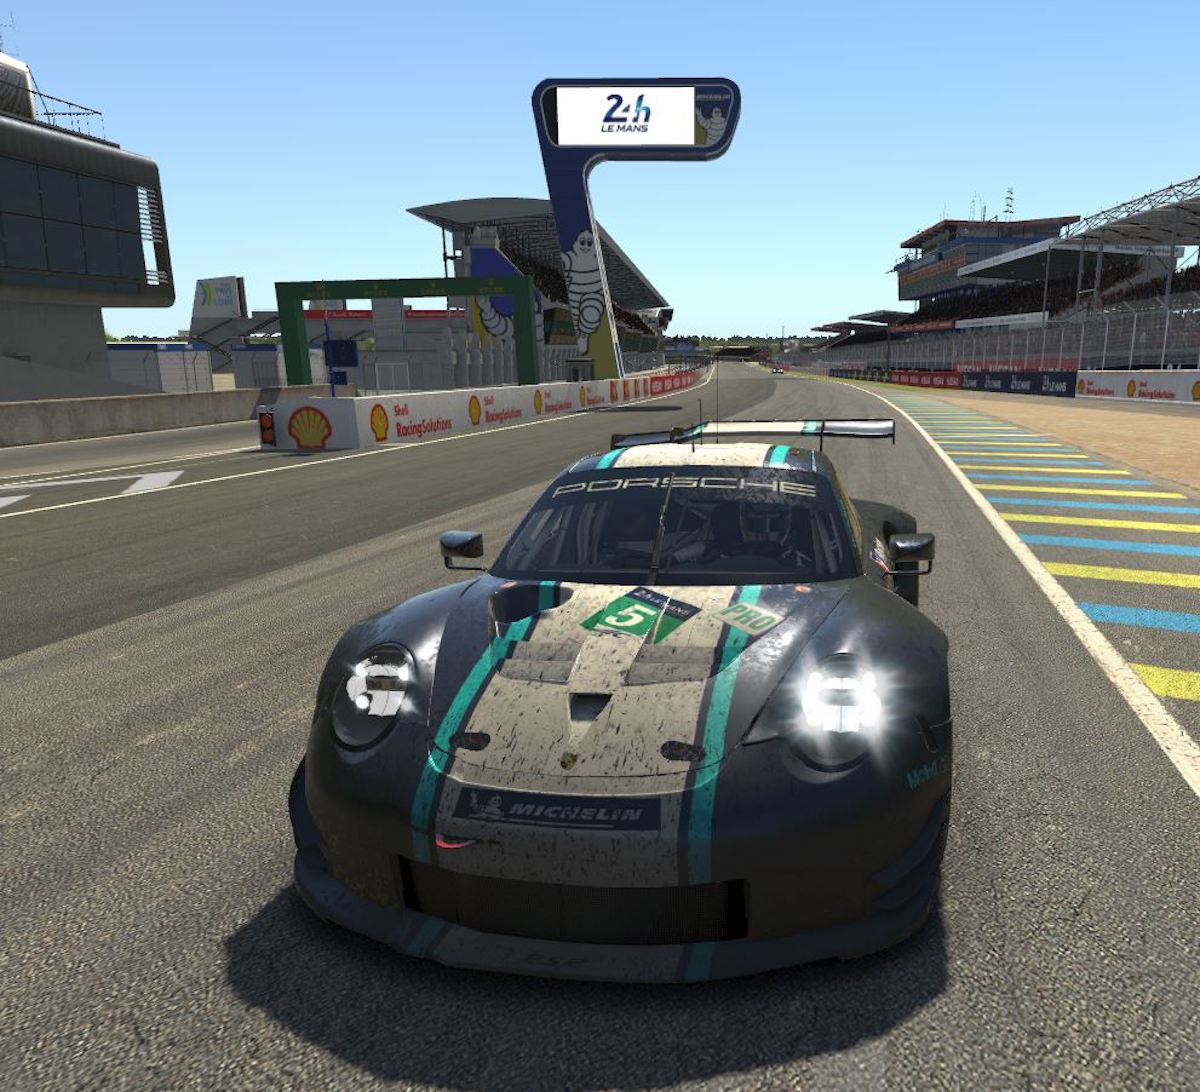 iracing – Porsche 911 RSR at Le Mans 24h